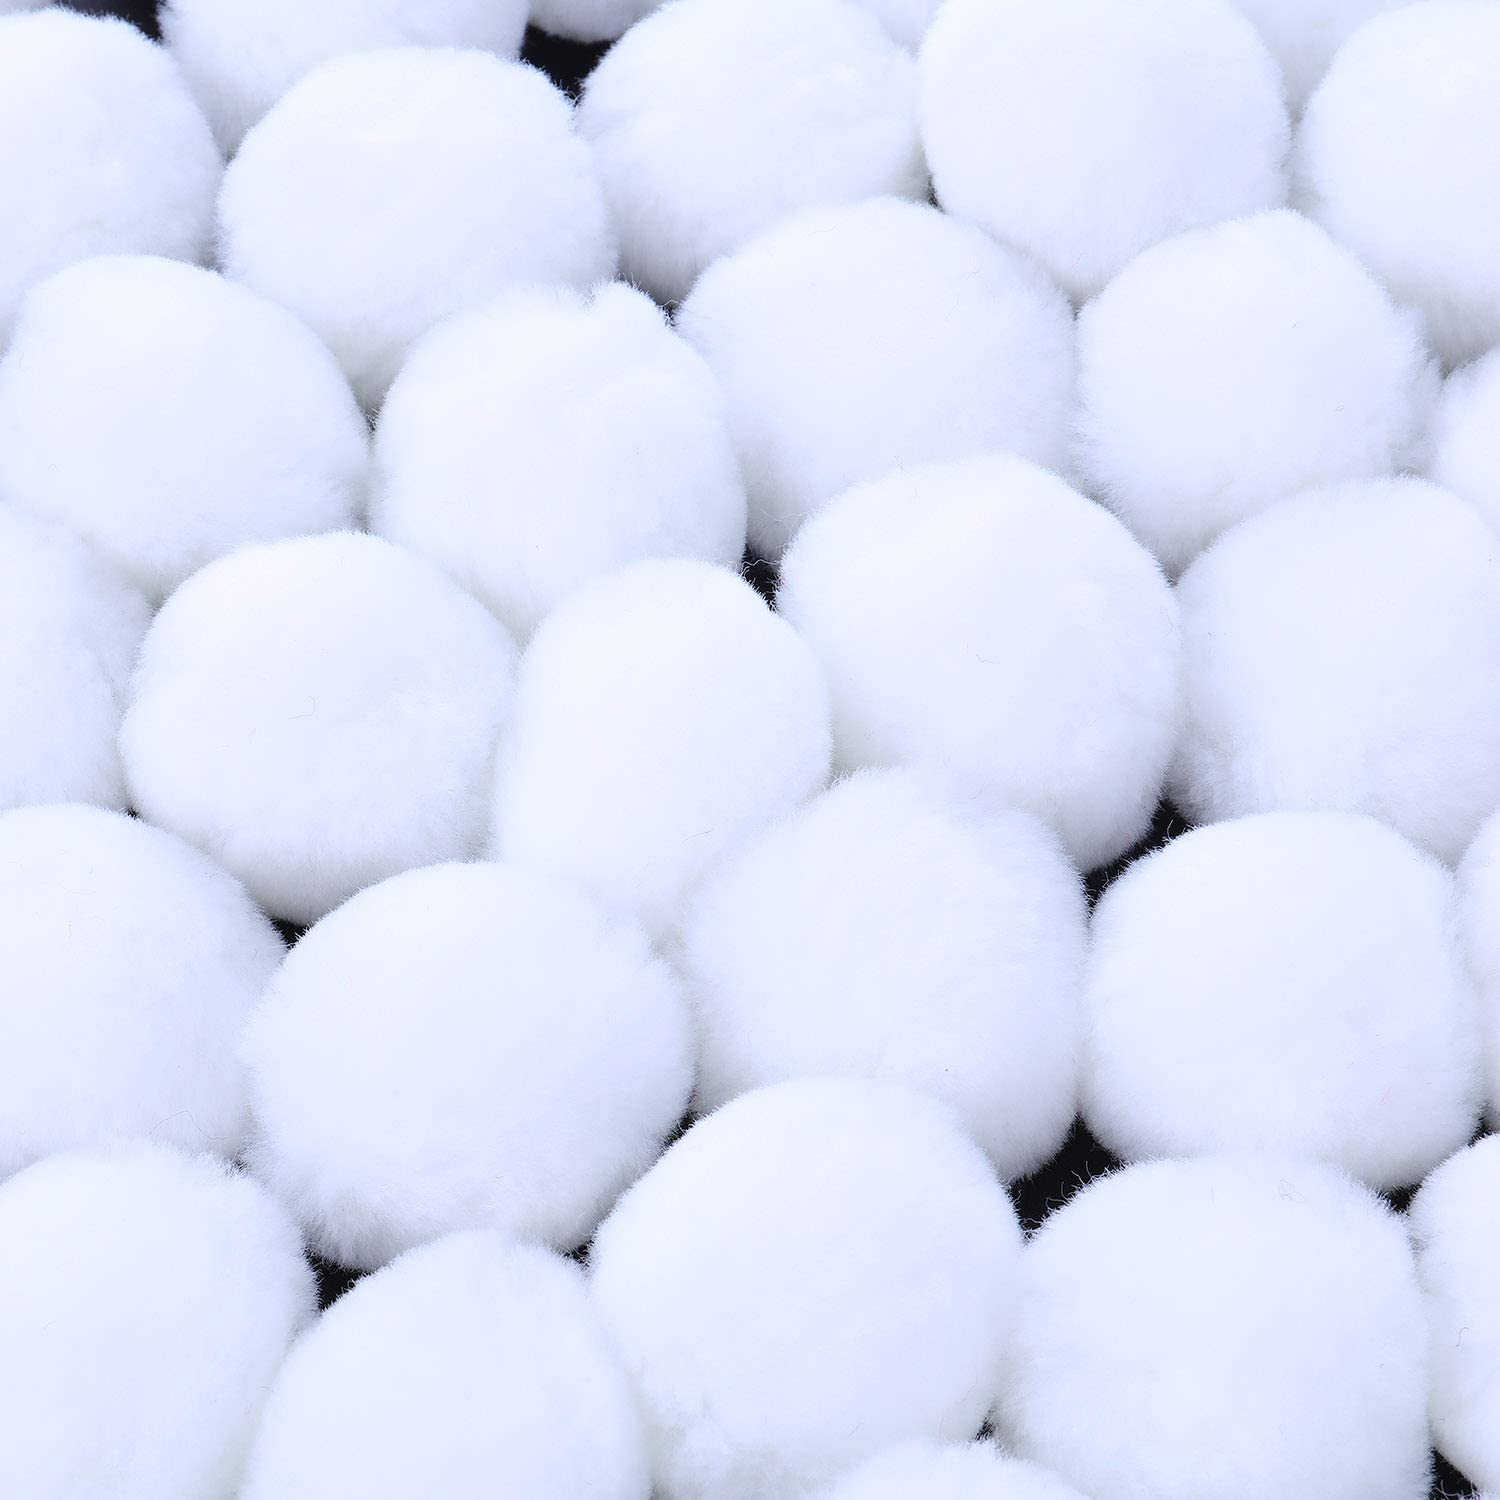 20 Pieces 2 Inch Acrylic Pom Poms Large White Halloween Pom Poms Tinkerbell Costume Accessory for DIY Craft Halloween Costume